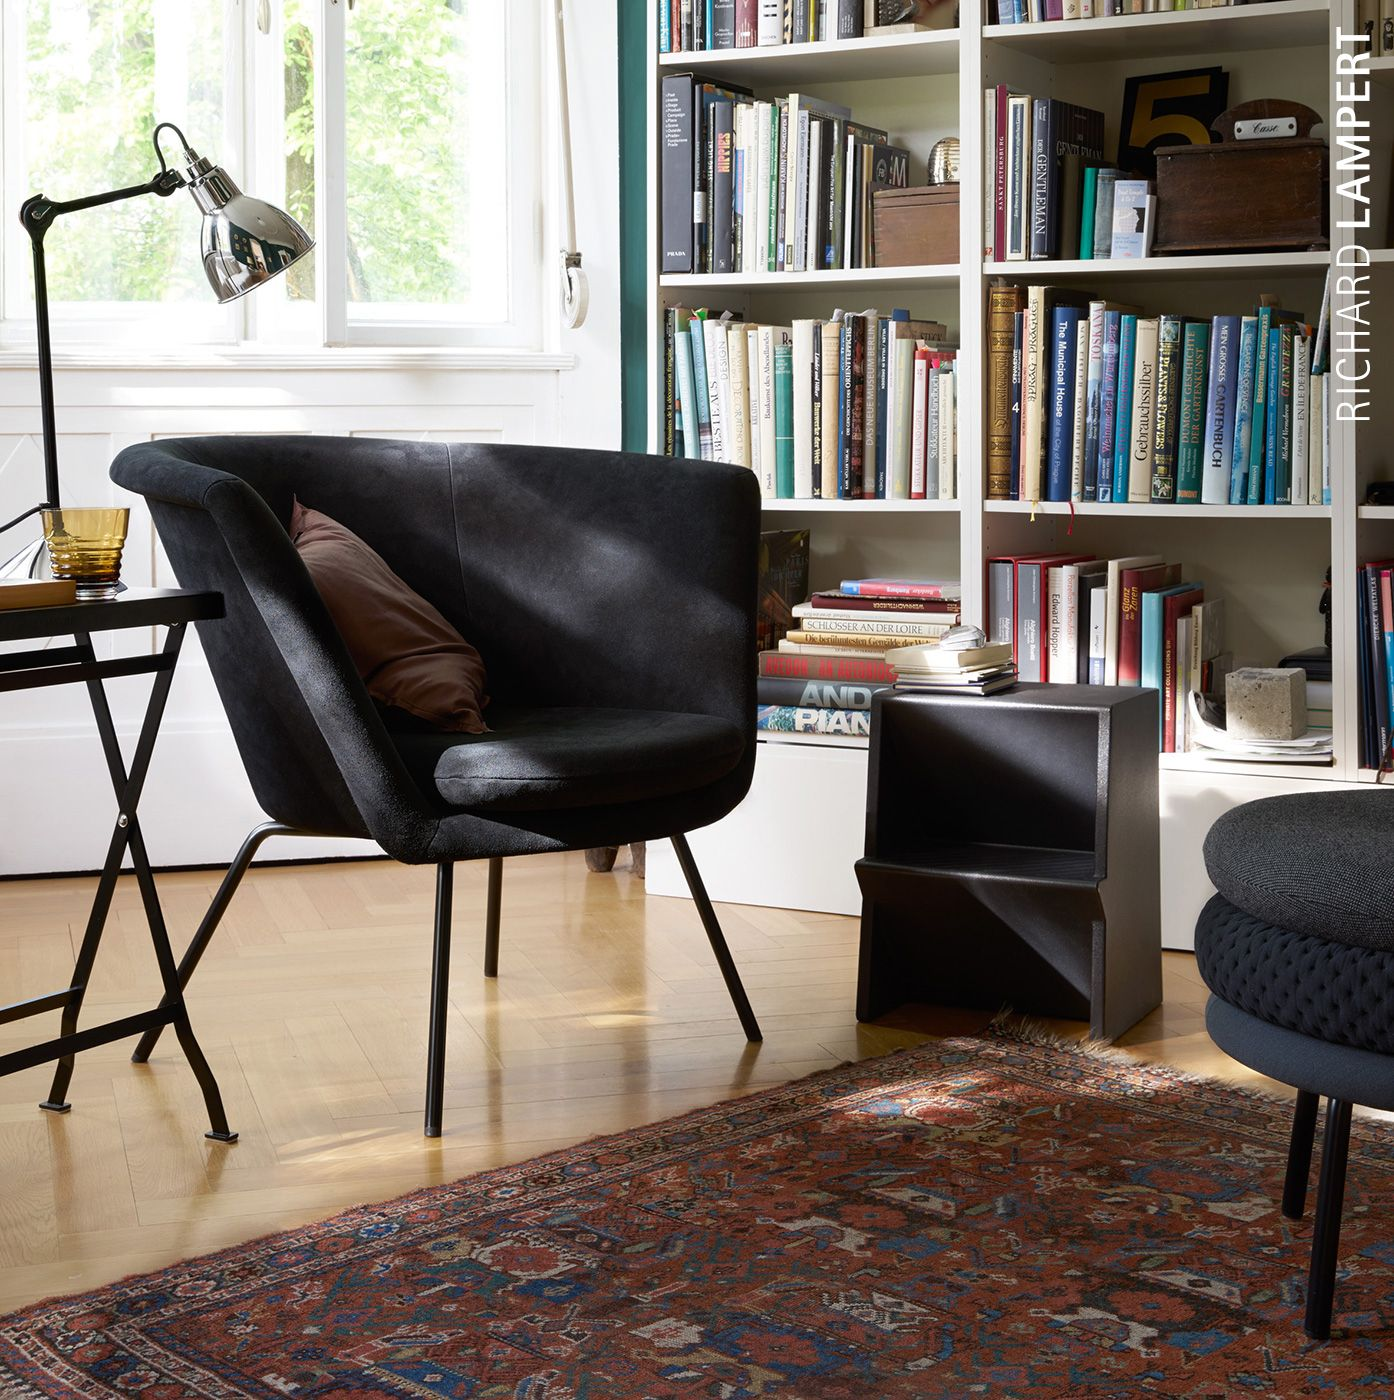 chair ›H57‹ by Herbert Hirche and step stool ›Mono‹ by Steffen